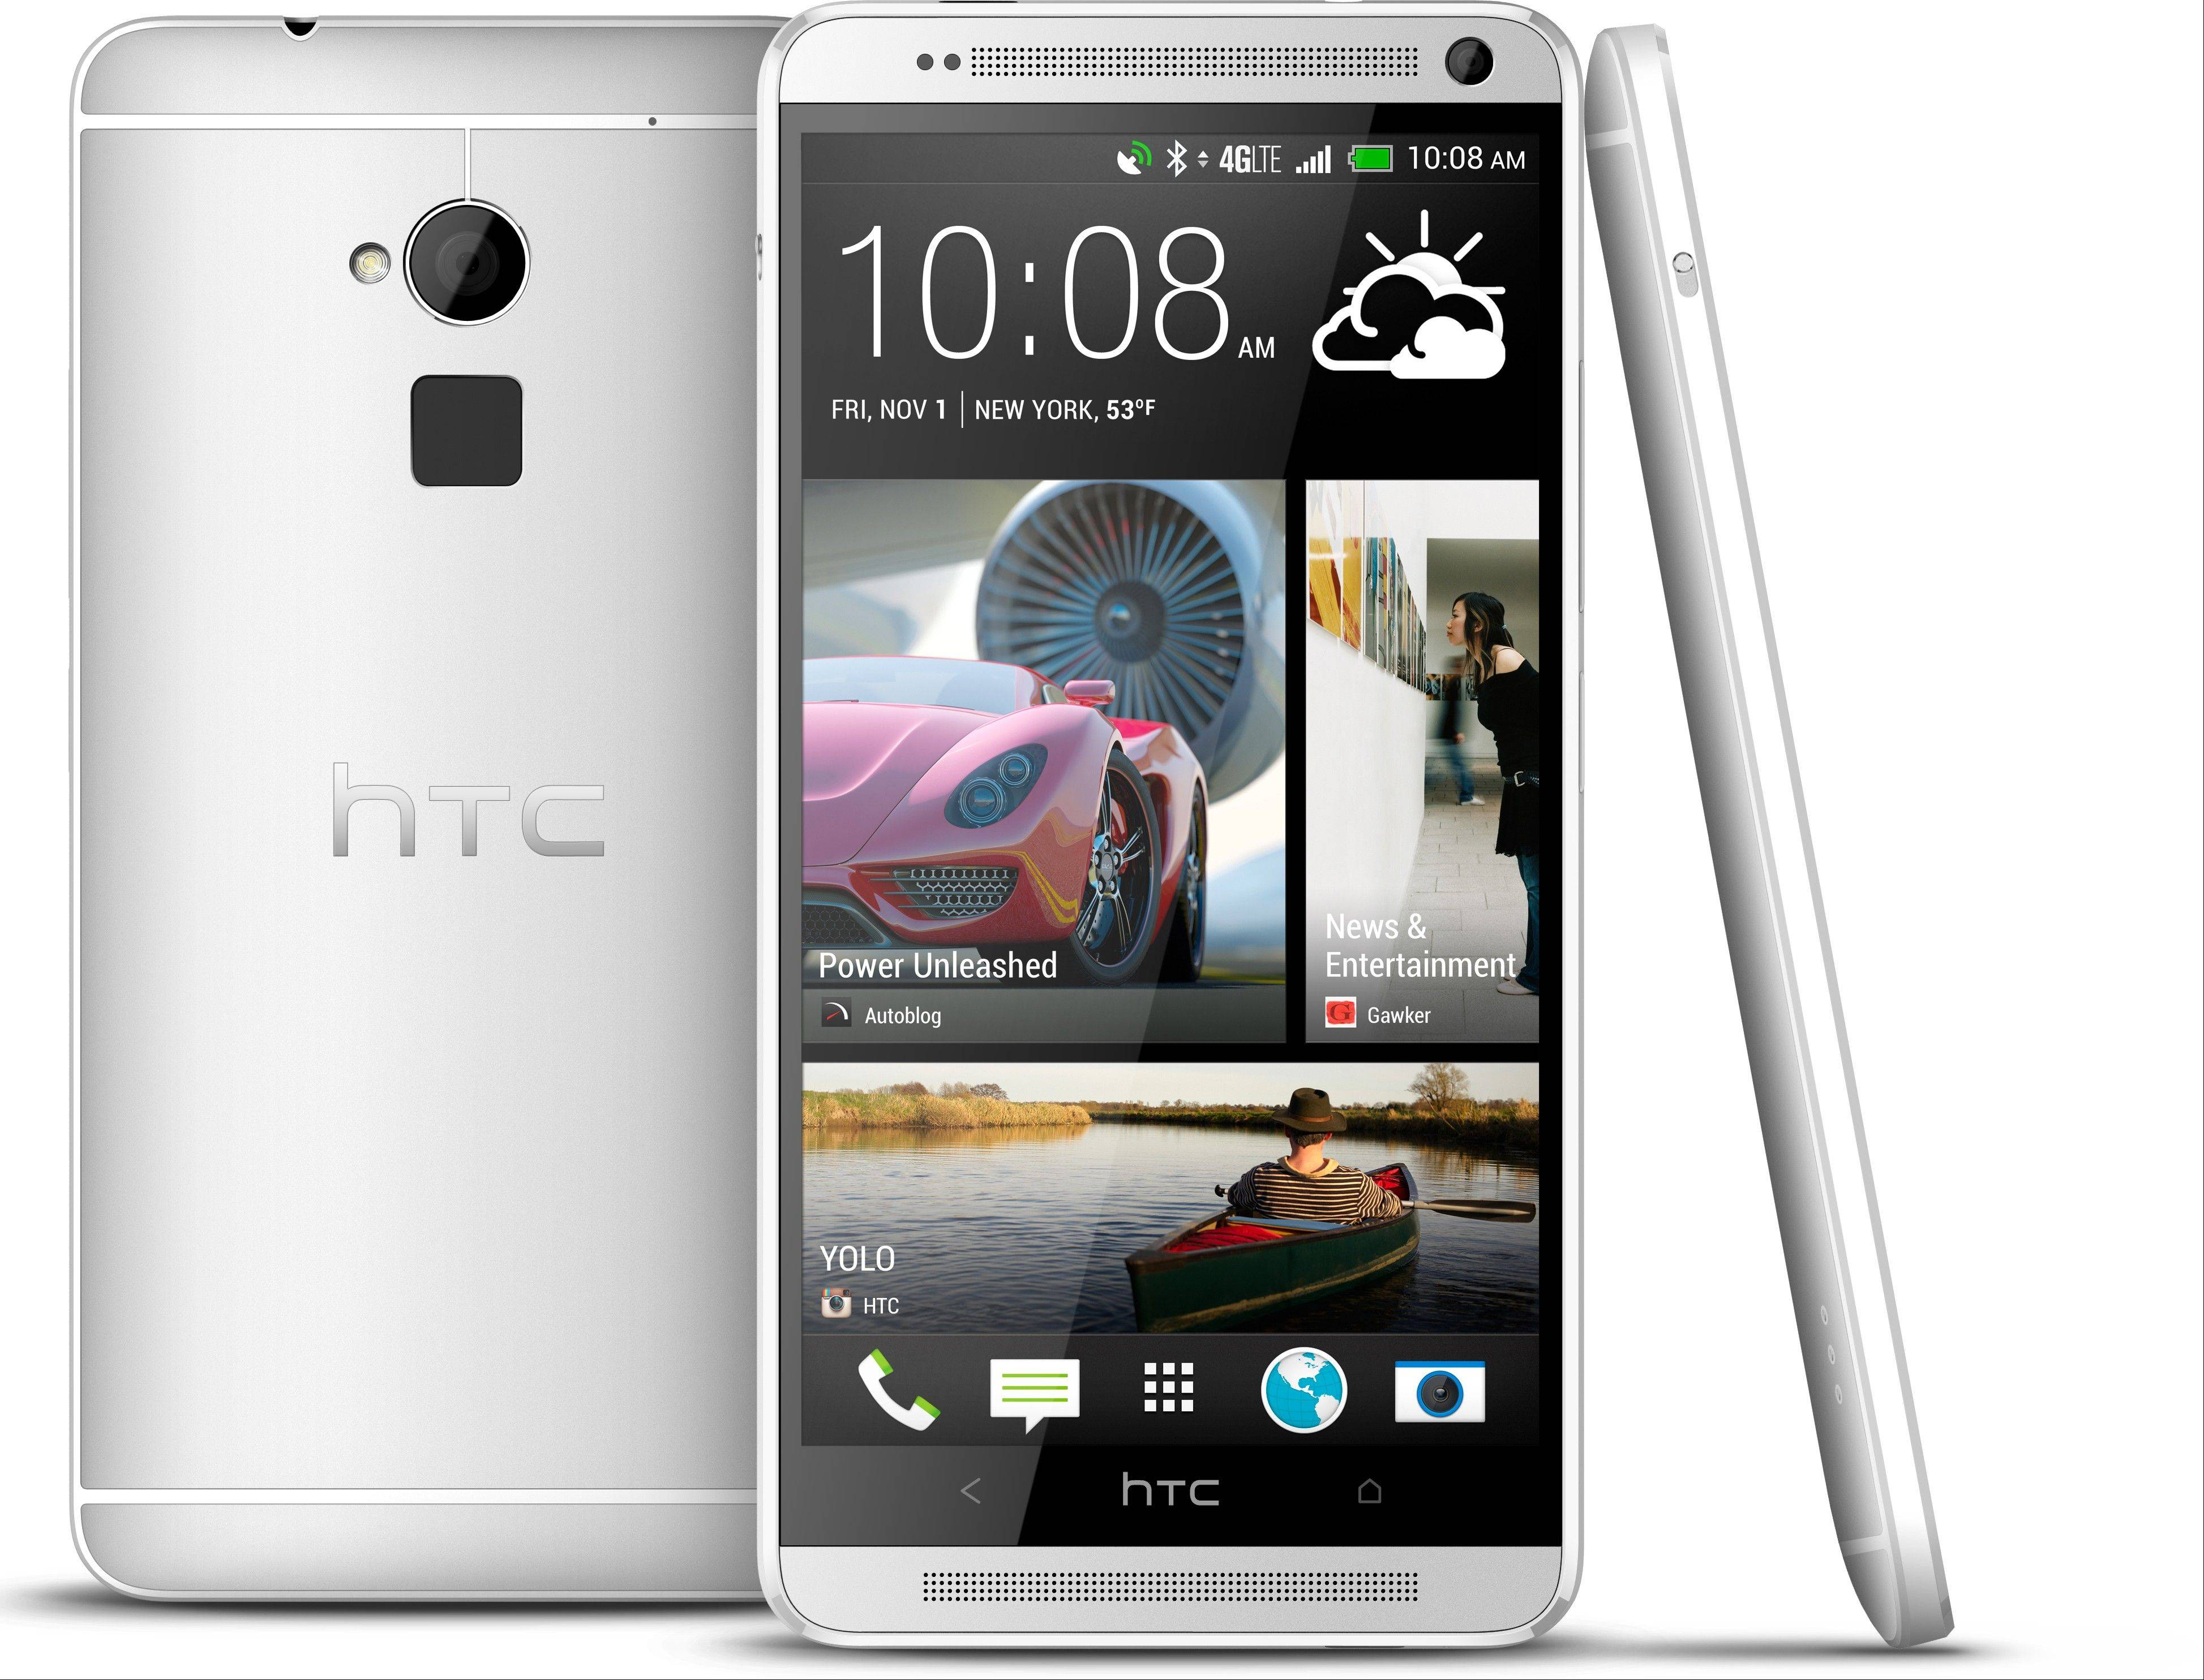 The new HTC One Max will have one feature unavailable with the smaller models: a fingerprint identification sensor similar to that on Apple's new iPhone 5S. It's an optional way to unlock a phone without needing a four-digit passcode.